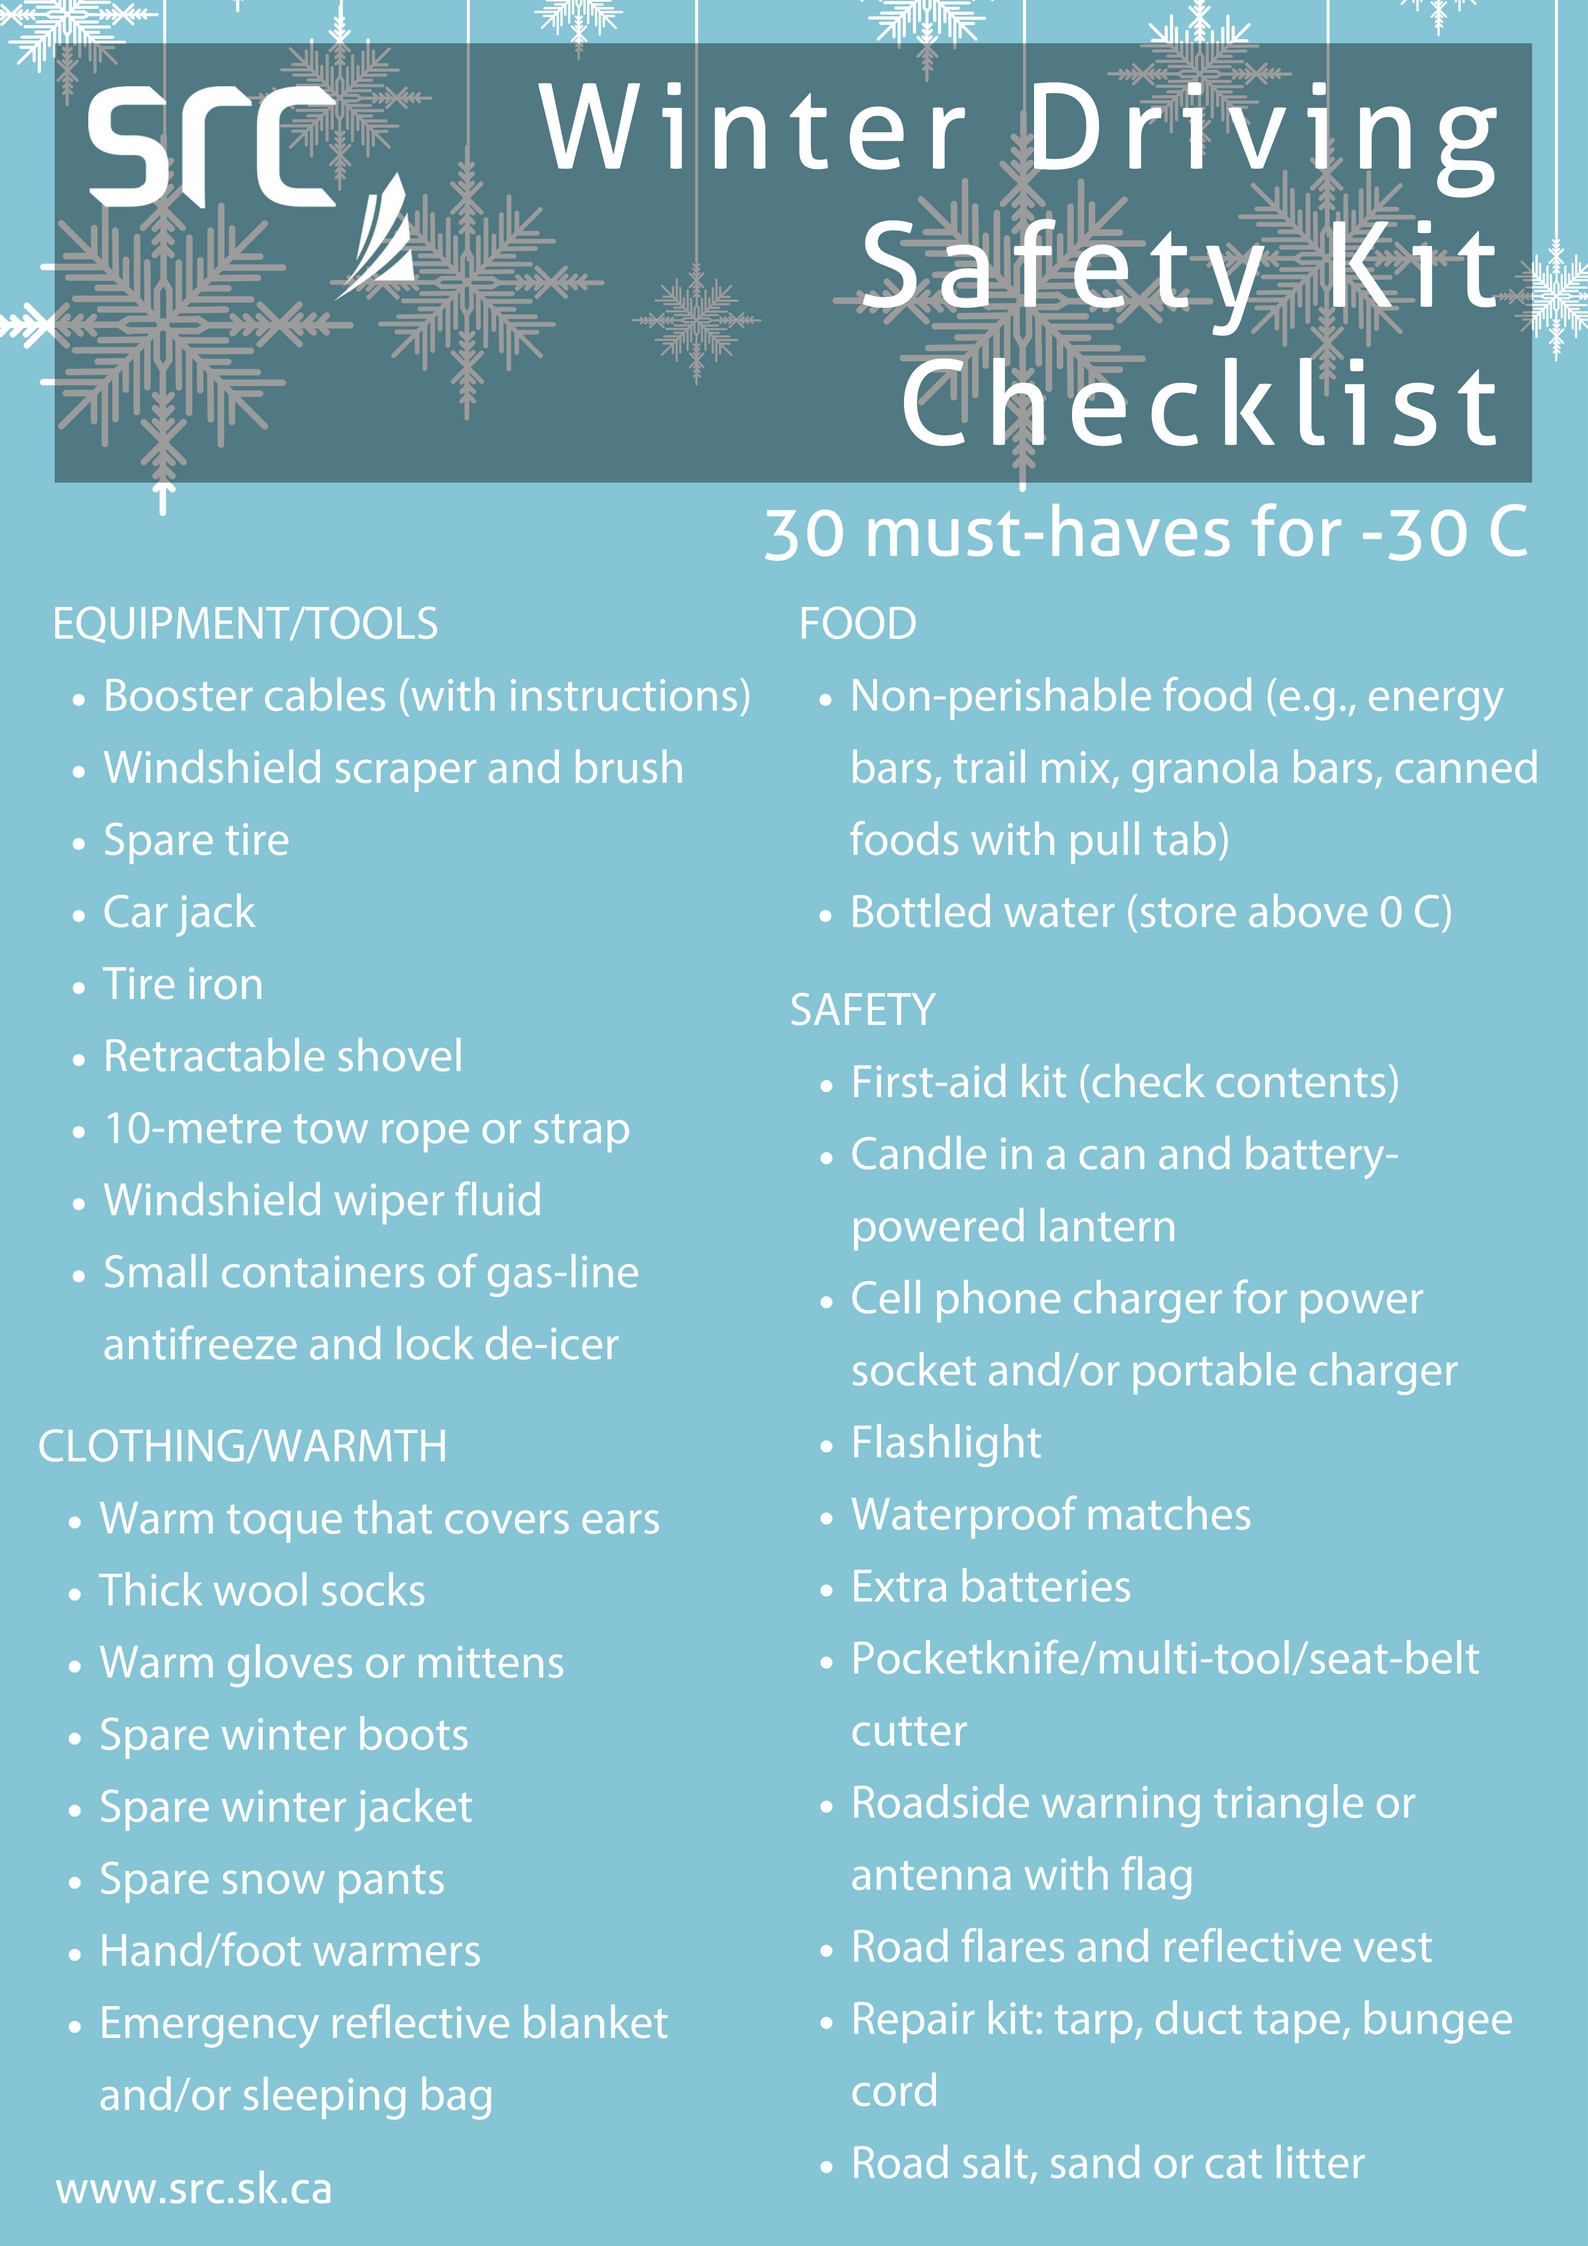 winter driving safety kit checklist